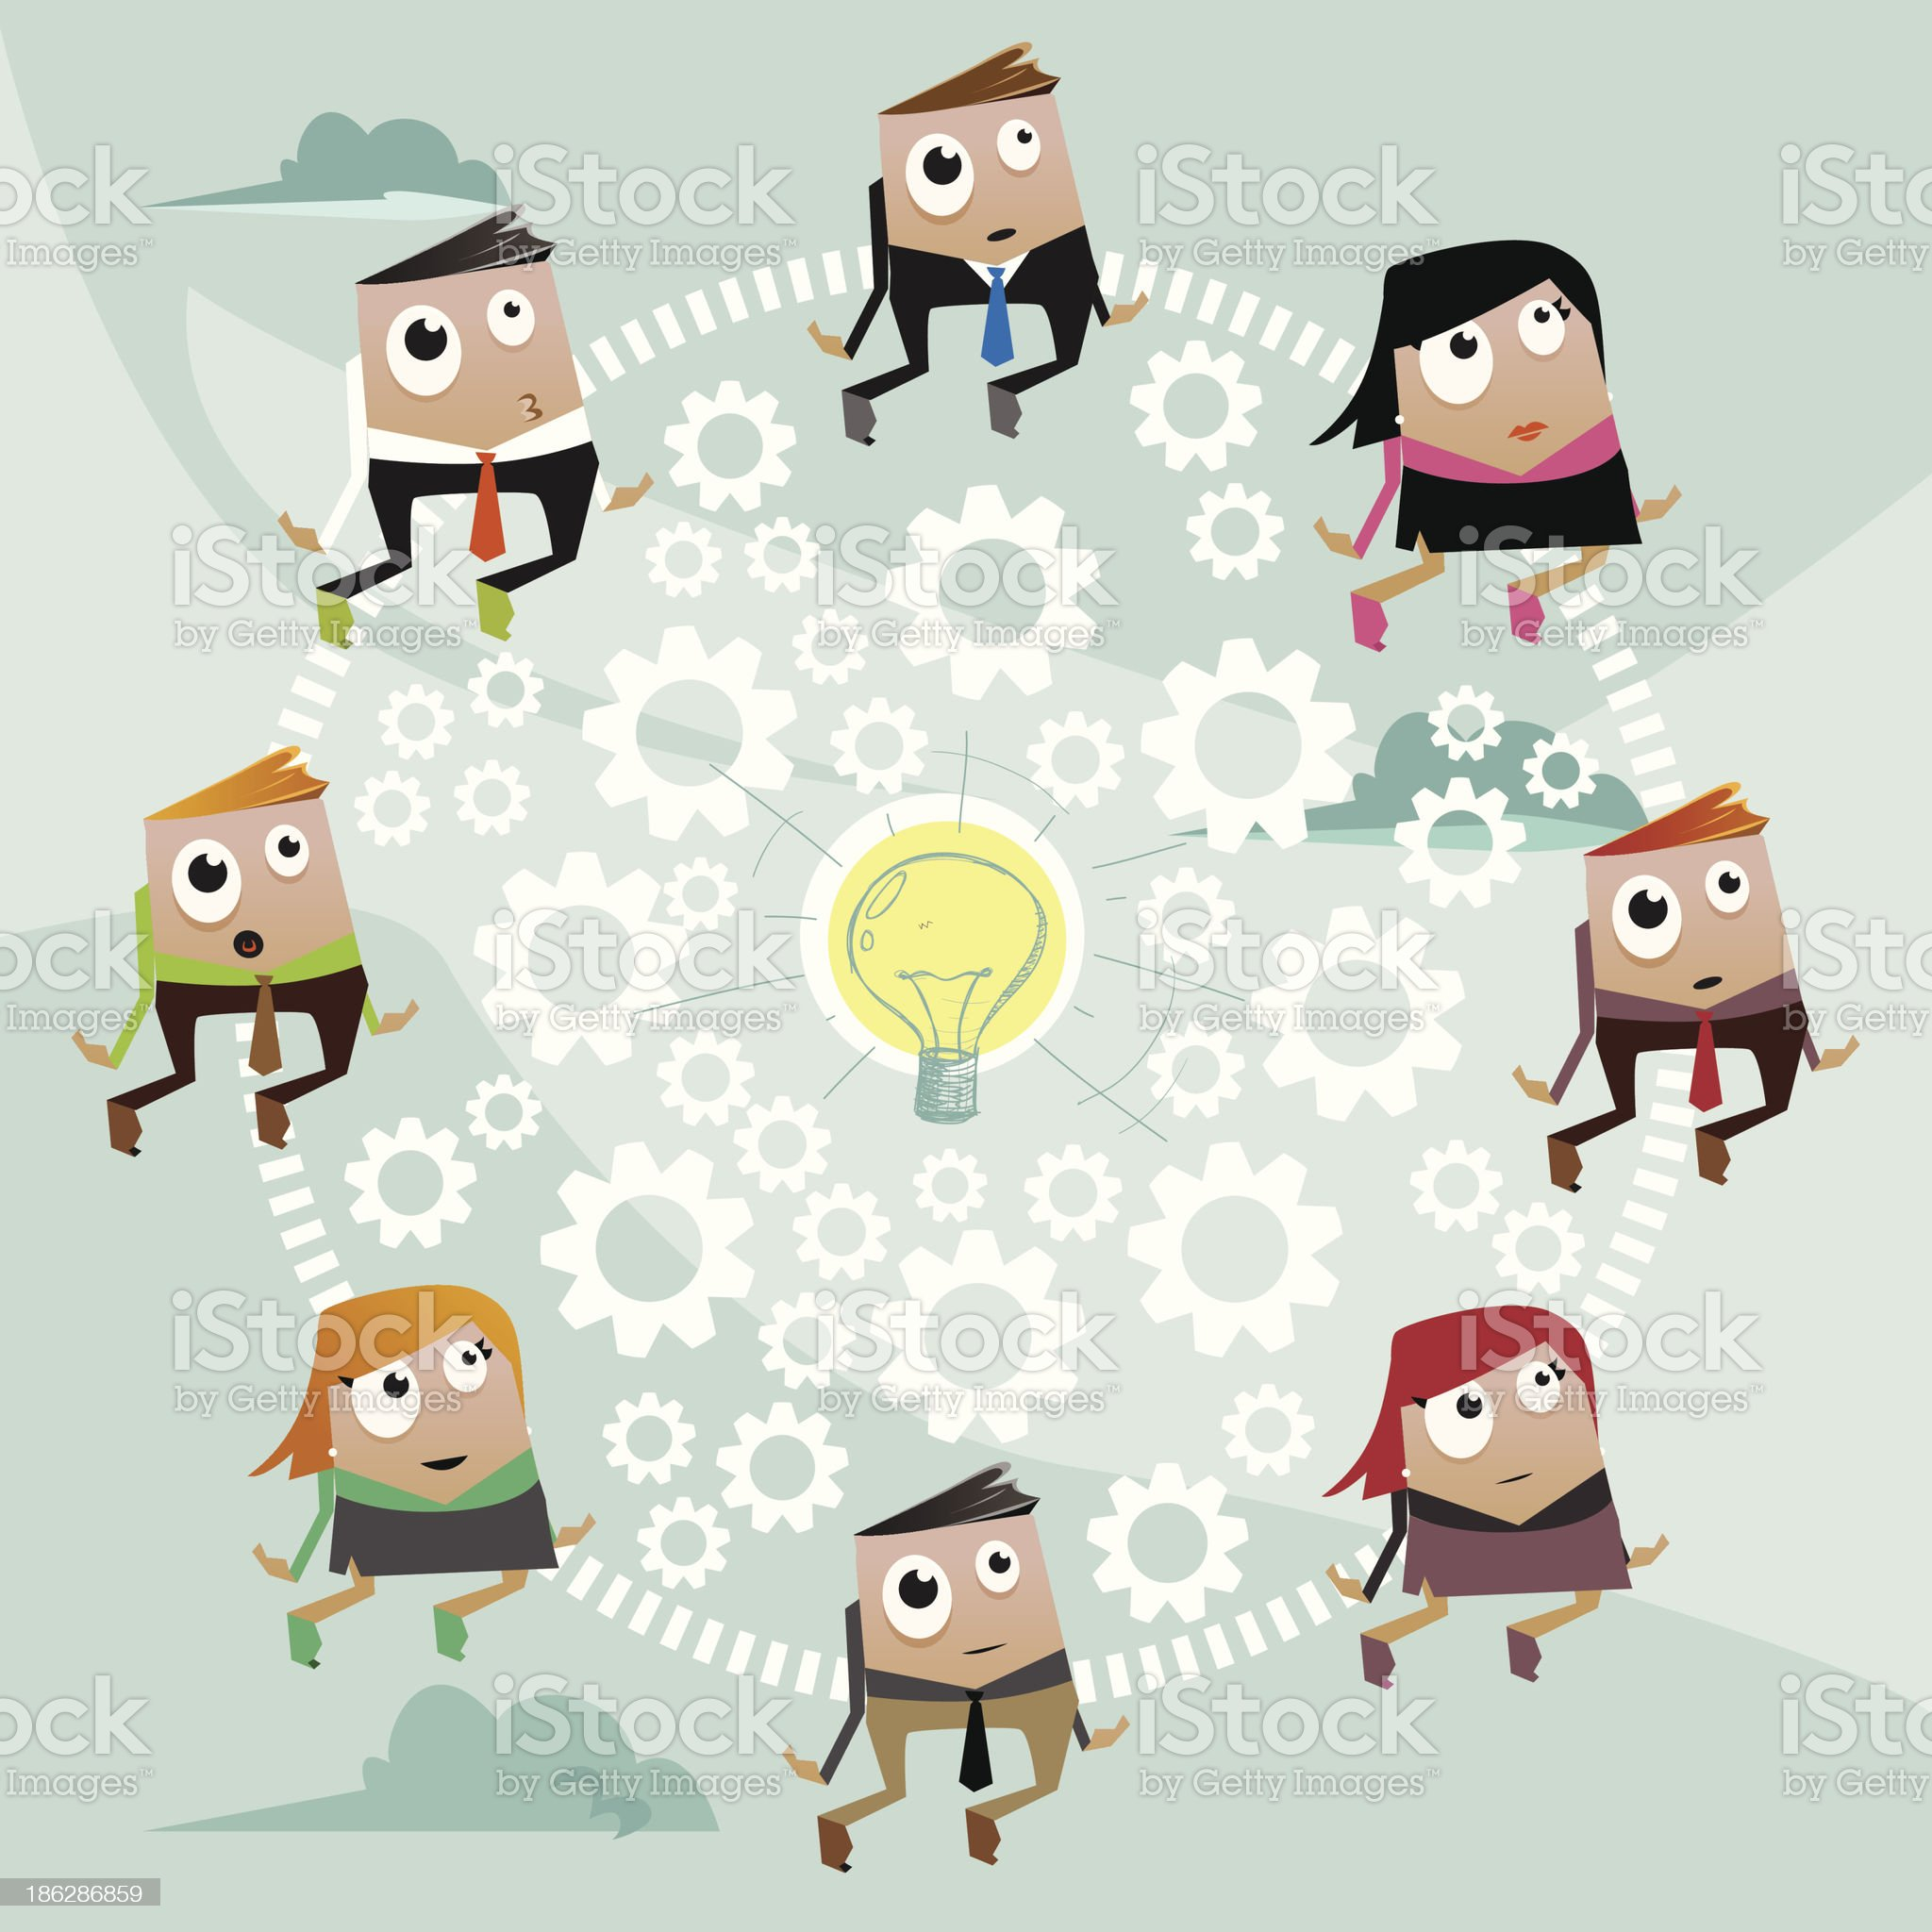 Teamwork royalty-free stock vector art